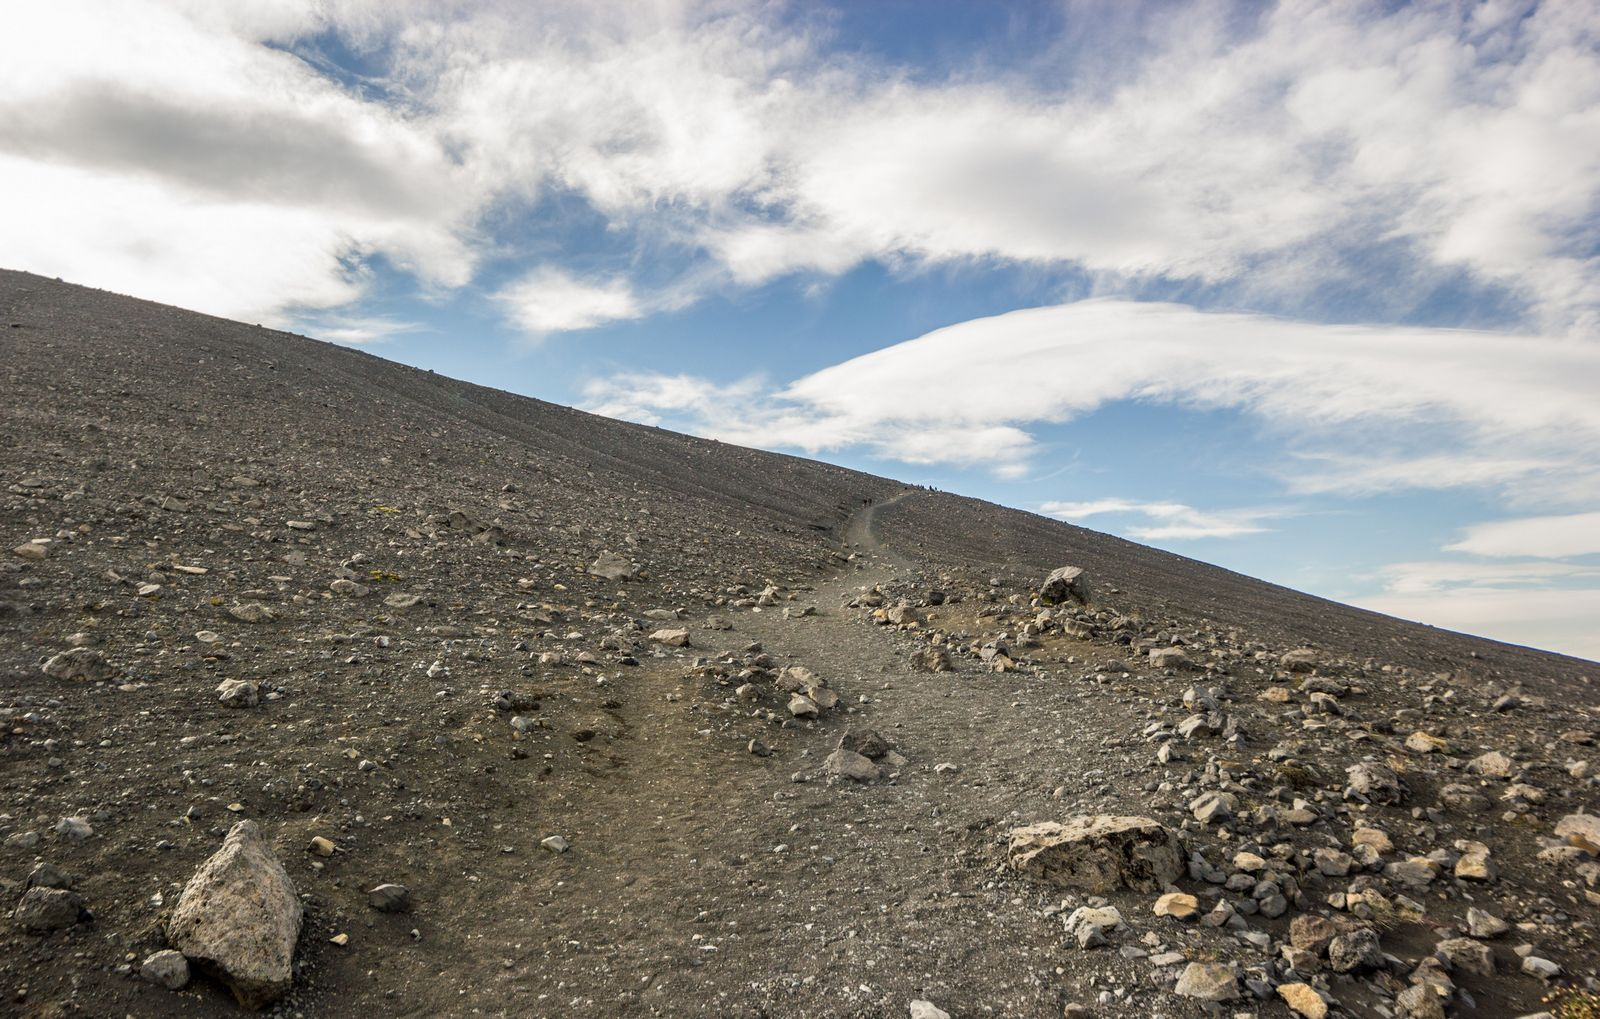 El ascenso asequible a Hverfjall